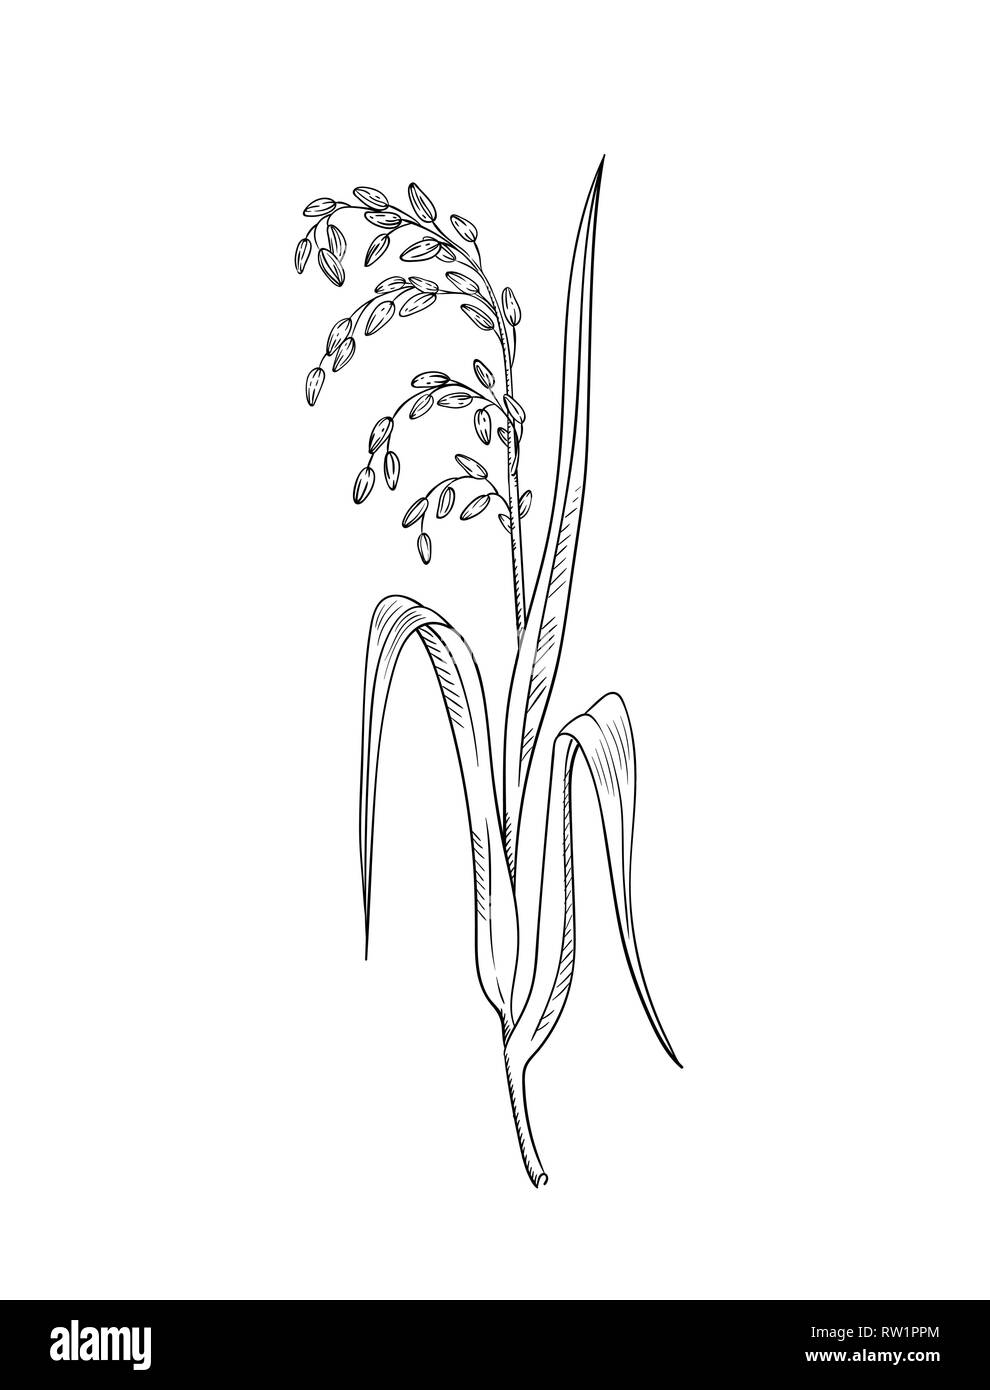 Rice plant botanical illustration vector sketch of rice twig with leaves and earof ripe grains isolated on white asian beauty herb - Stock Vector